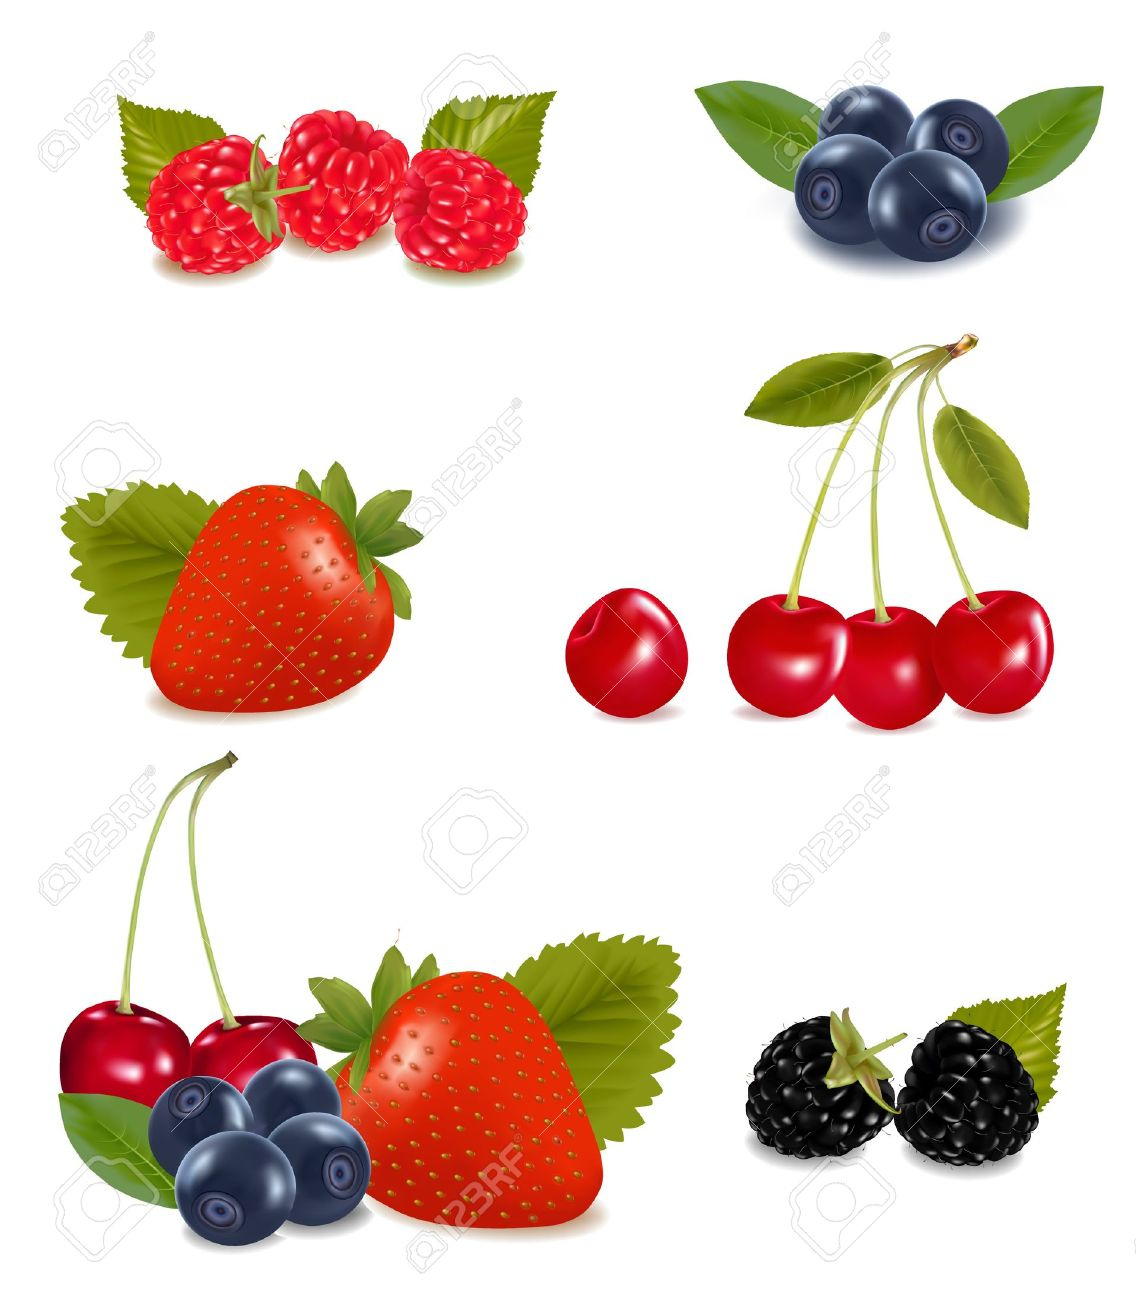 Berry clipart sour food